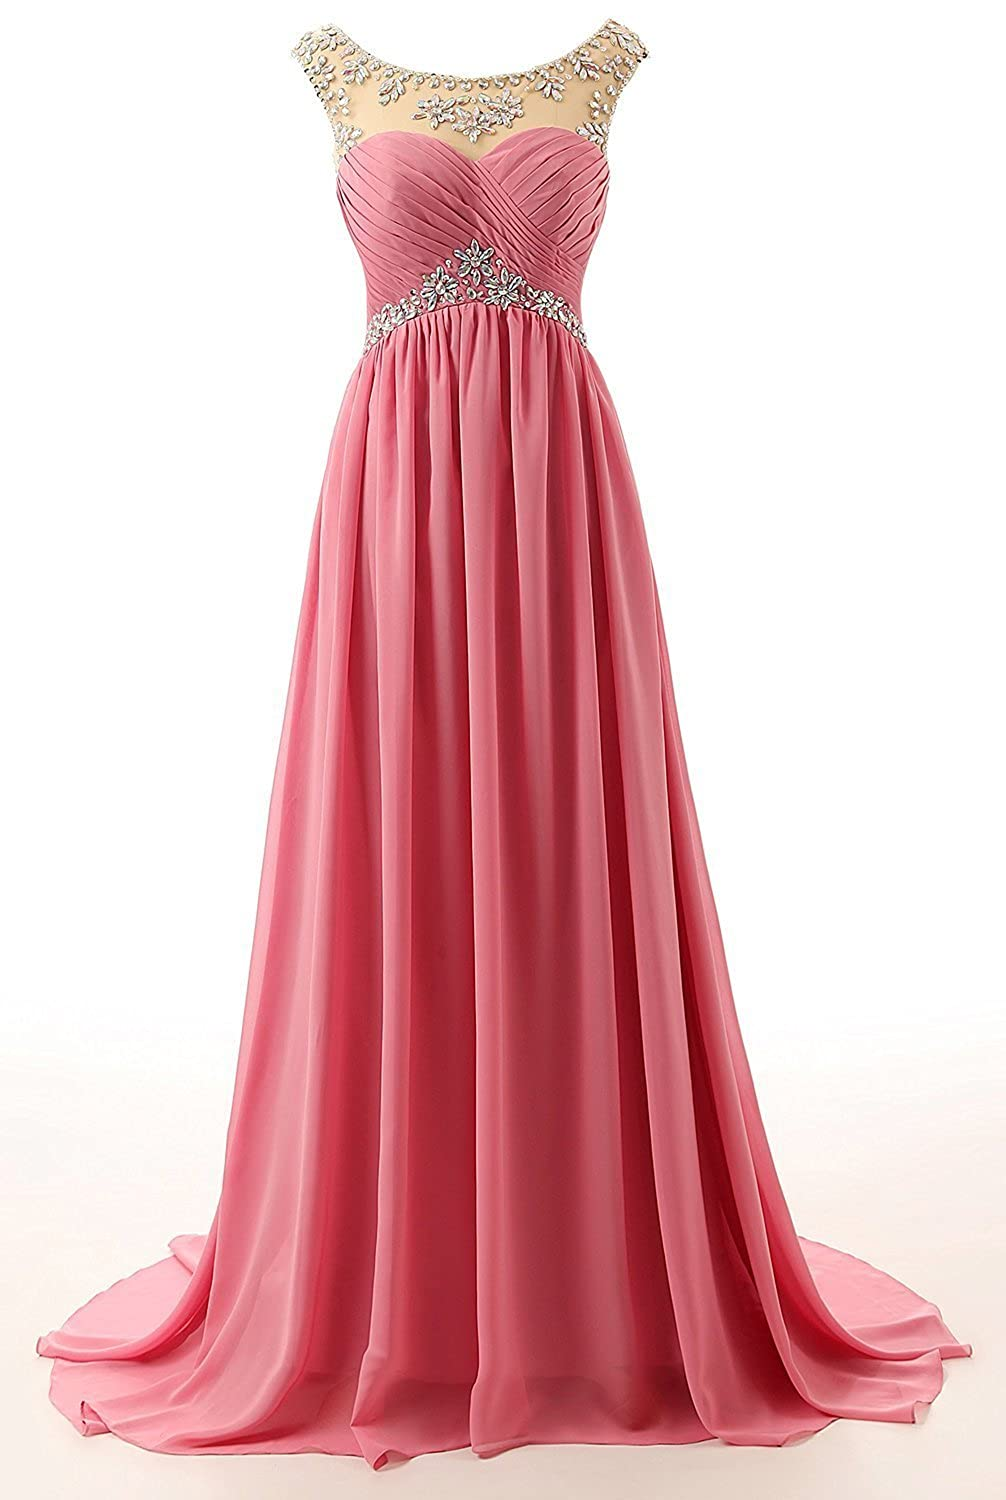 Ellenhouse Womens Beaded Bridesmaid Dress Long Prom Evening Gown EL066 at Amazon Womens Clothing store: